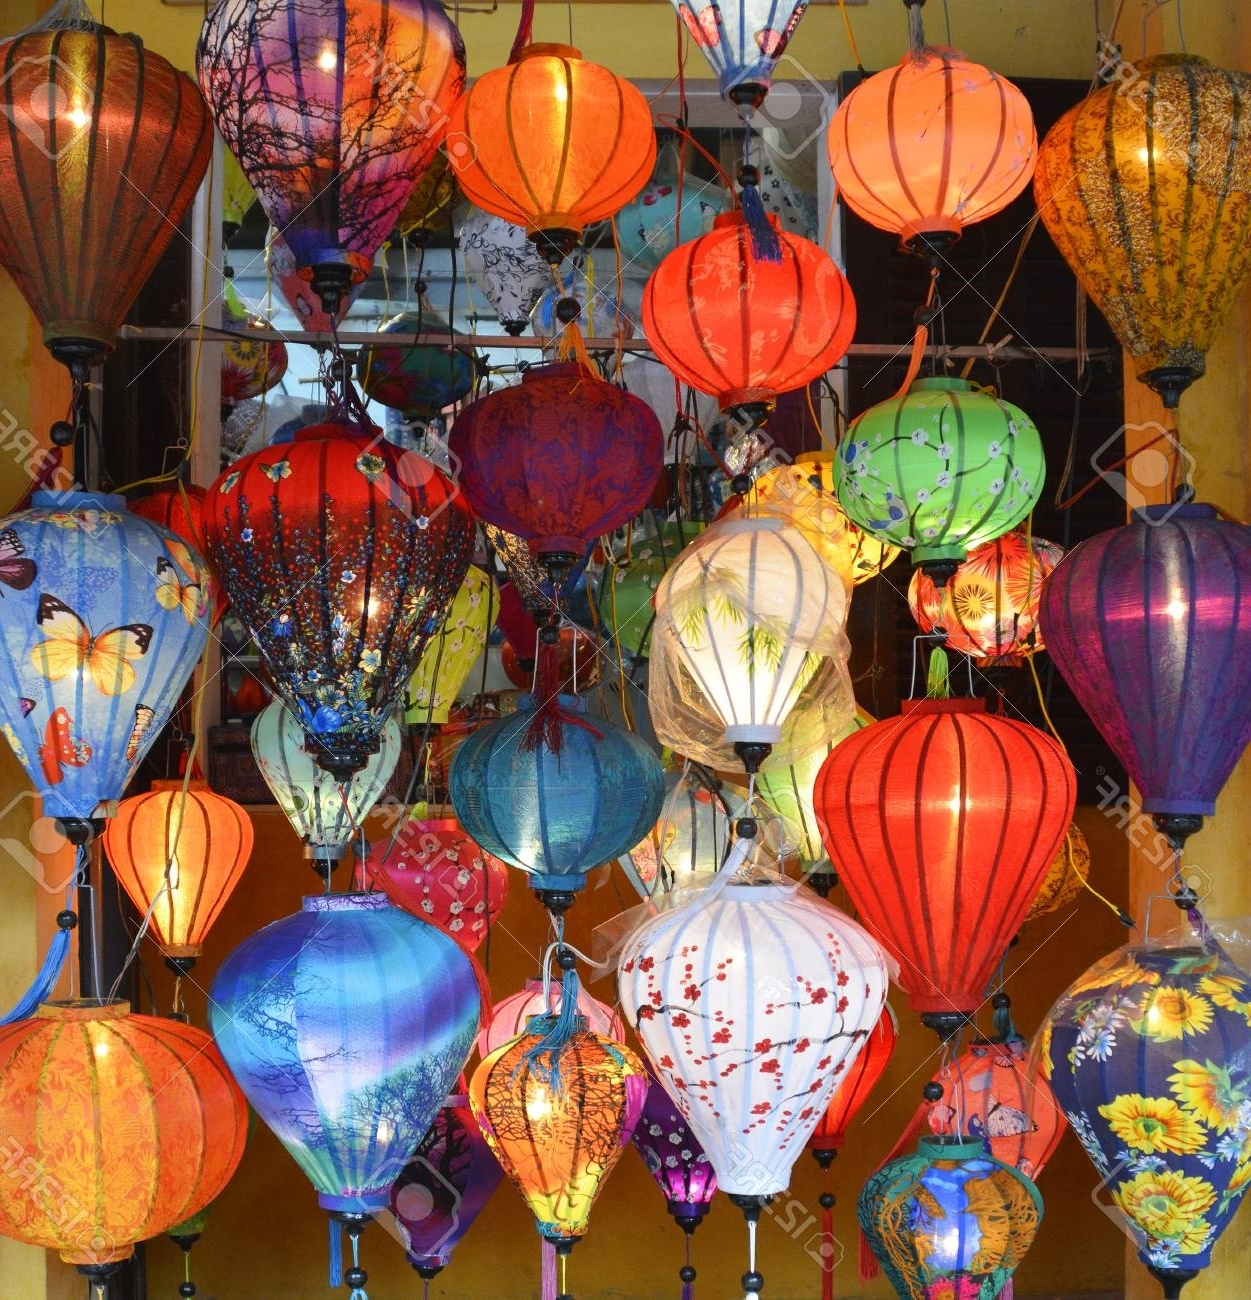 Outdoor Vietnamese Lanterns With Regard To Widely Used Colourful Fabric Lanterns Hang Outside A Shop In A Street In. (View 13 of 20)